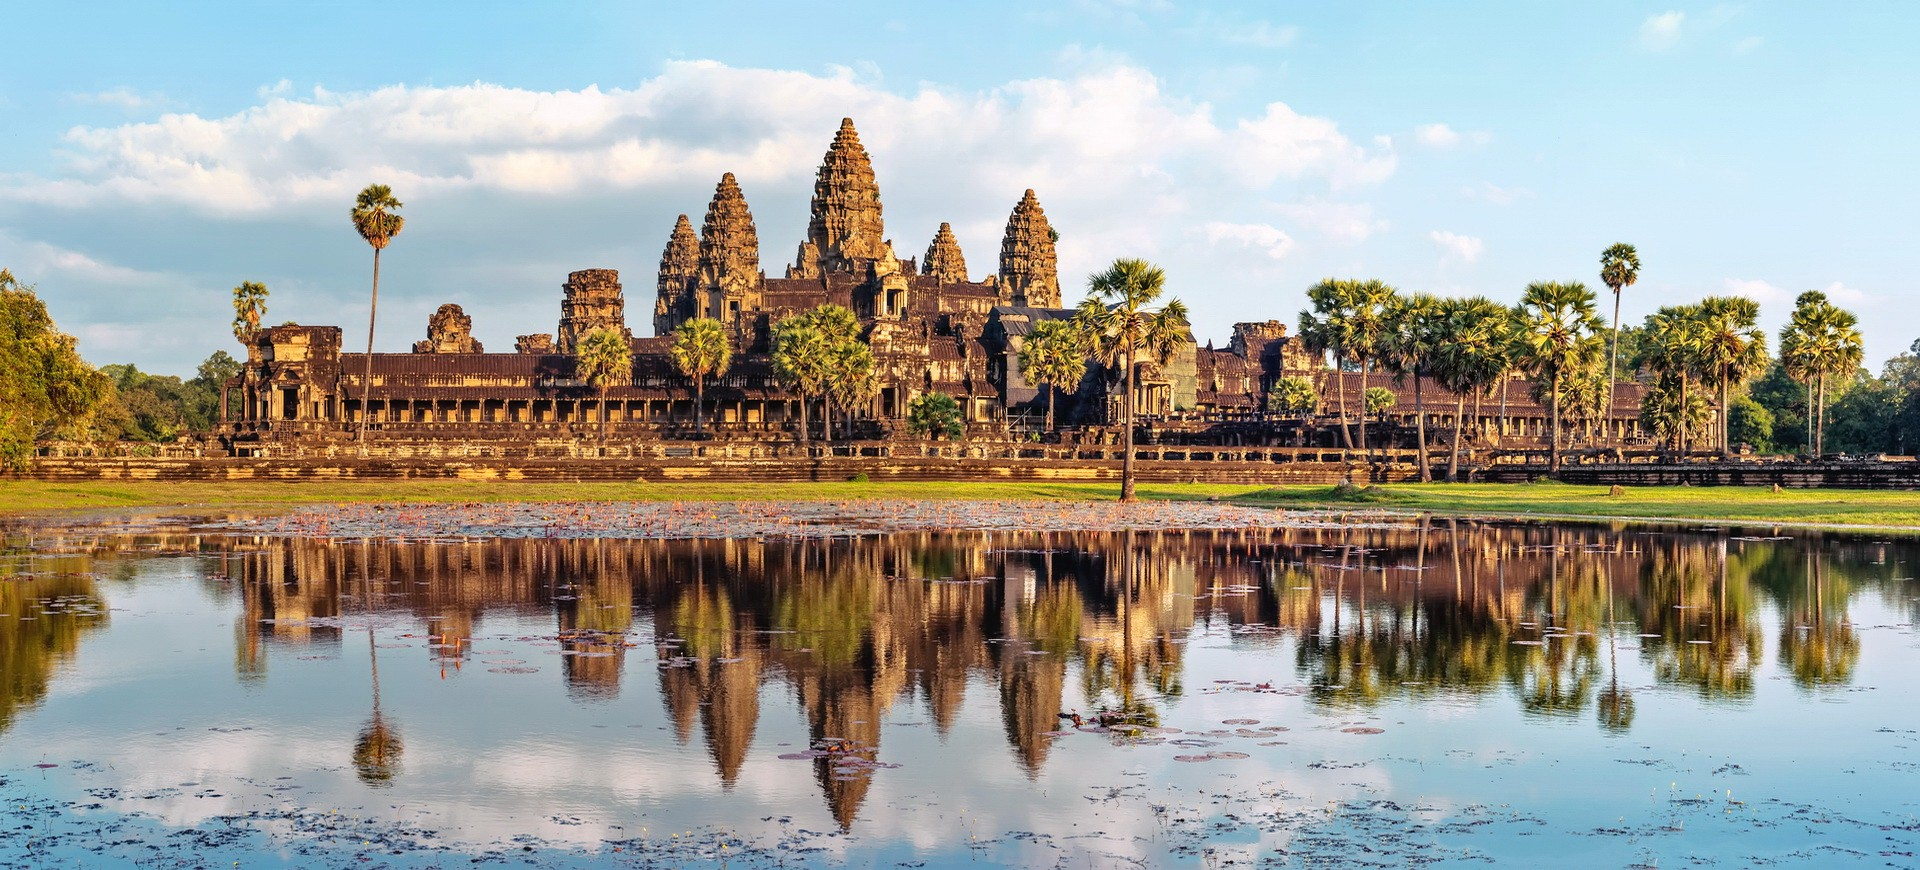 Asie Cambodge Siem Reap Temple Angkor Wat architecture Khmer